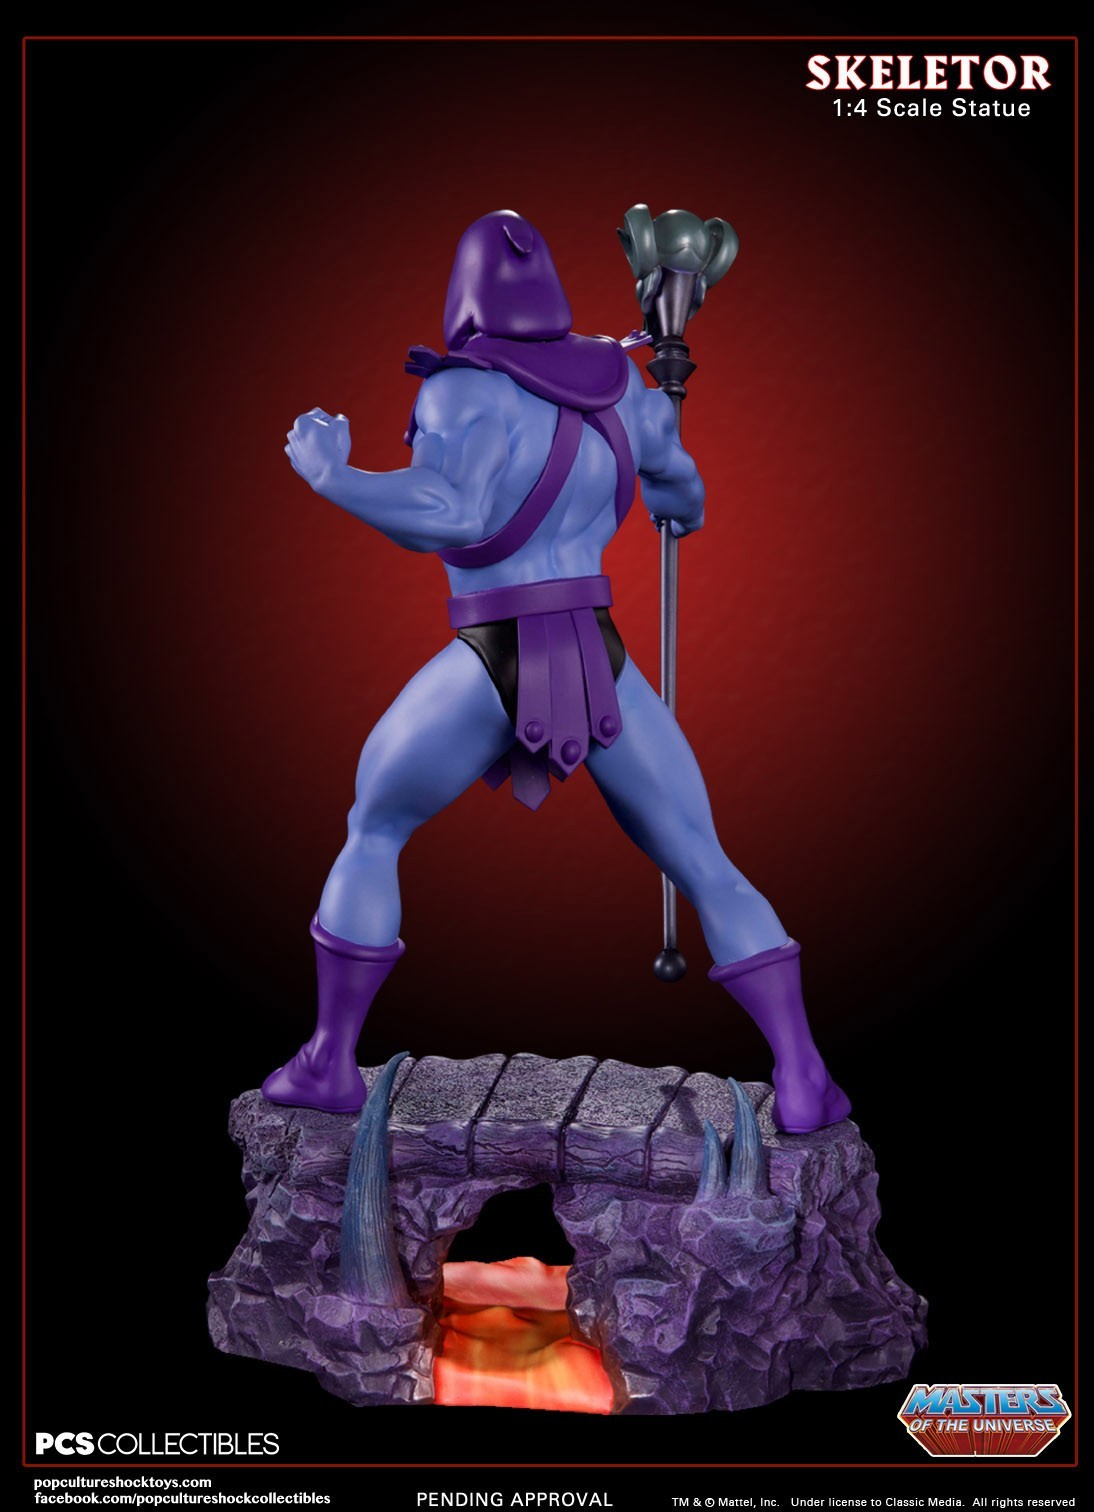 Alejandro pereira skeletor media m 1